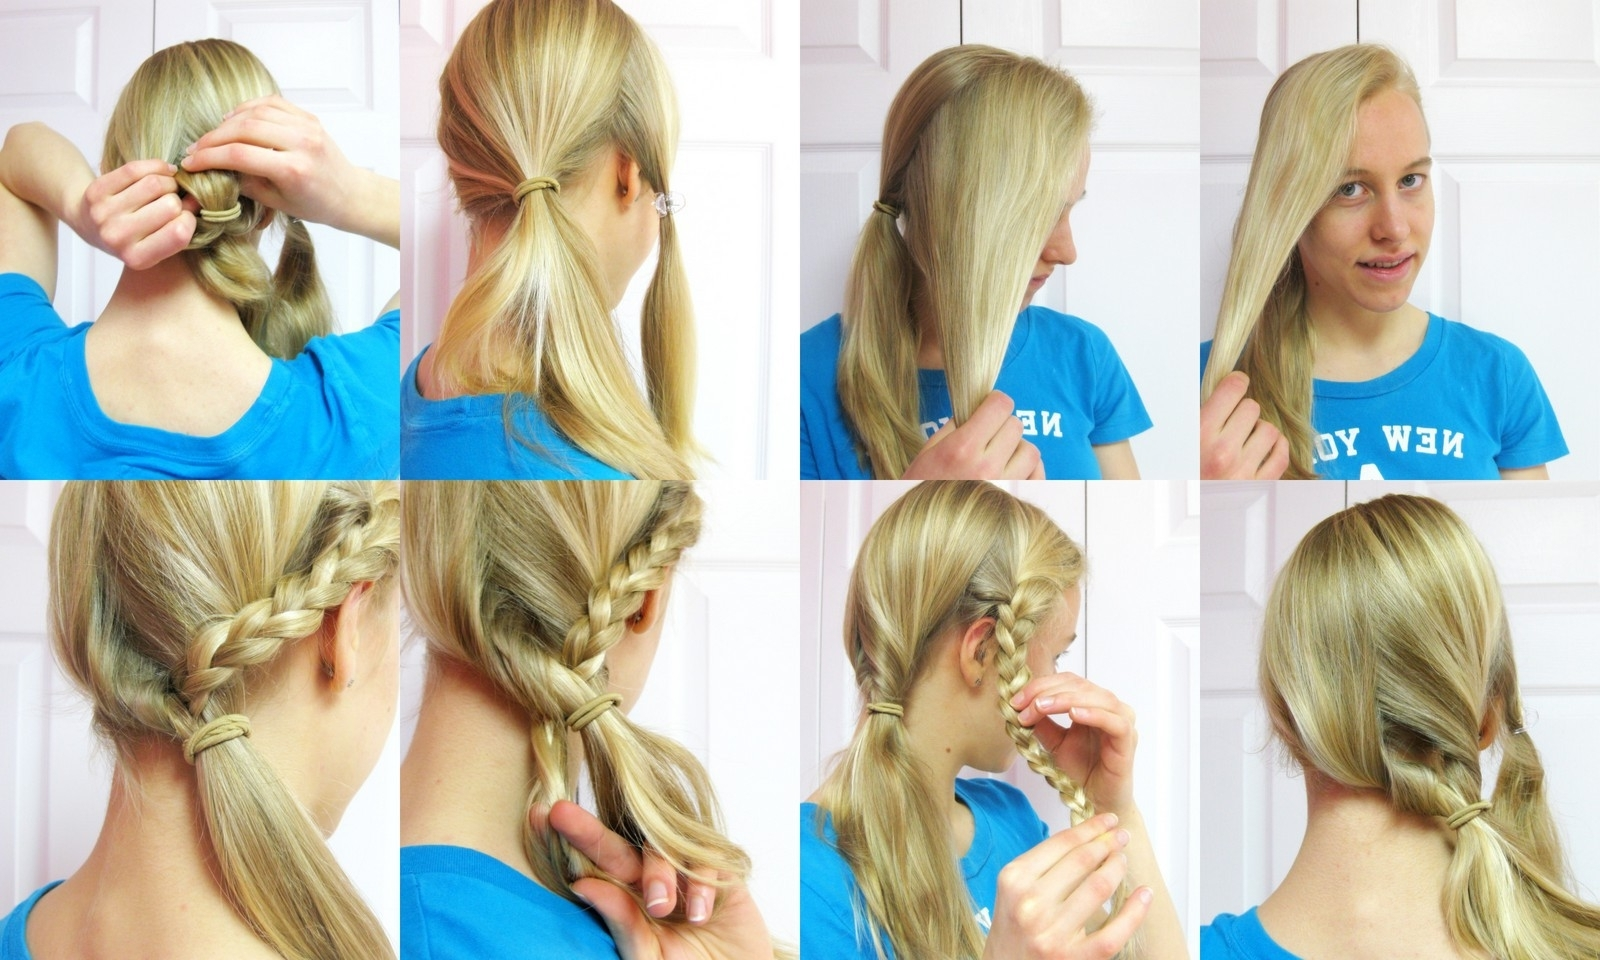 Hairstyle Tutorial: Side Ponytail With A Braid (View 8 of 20)